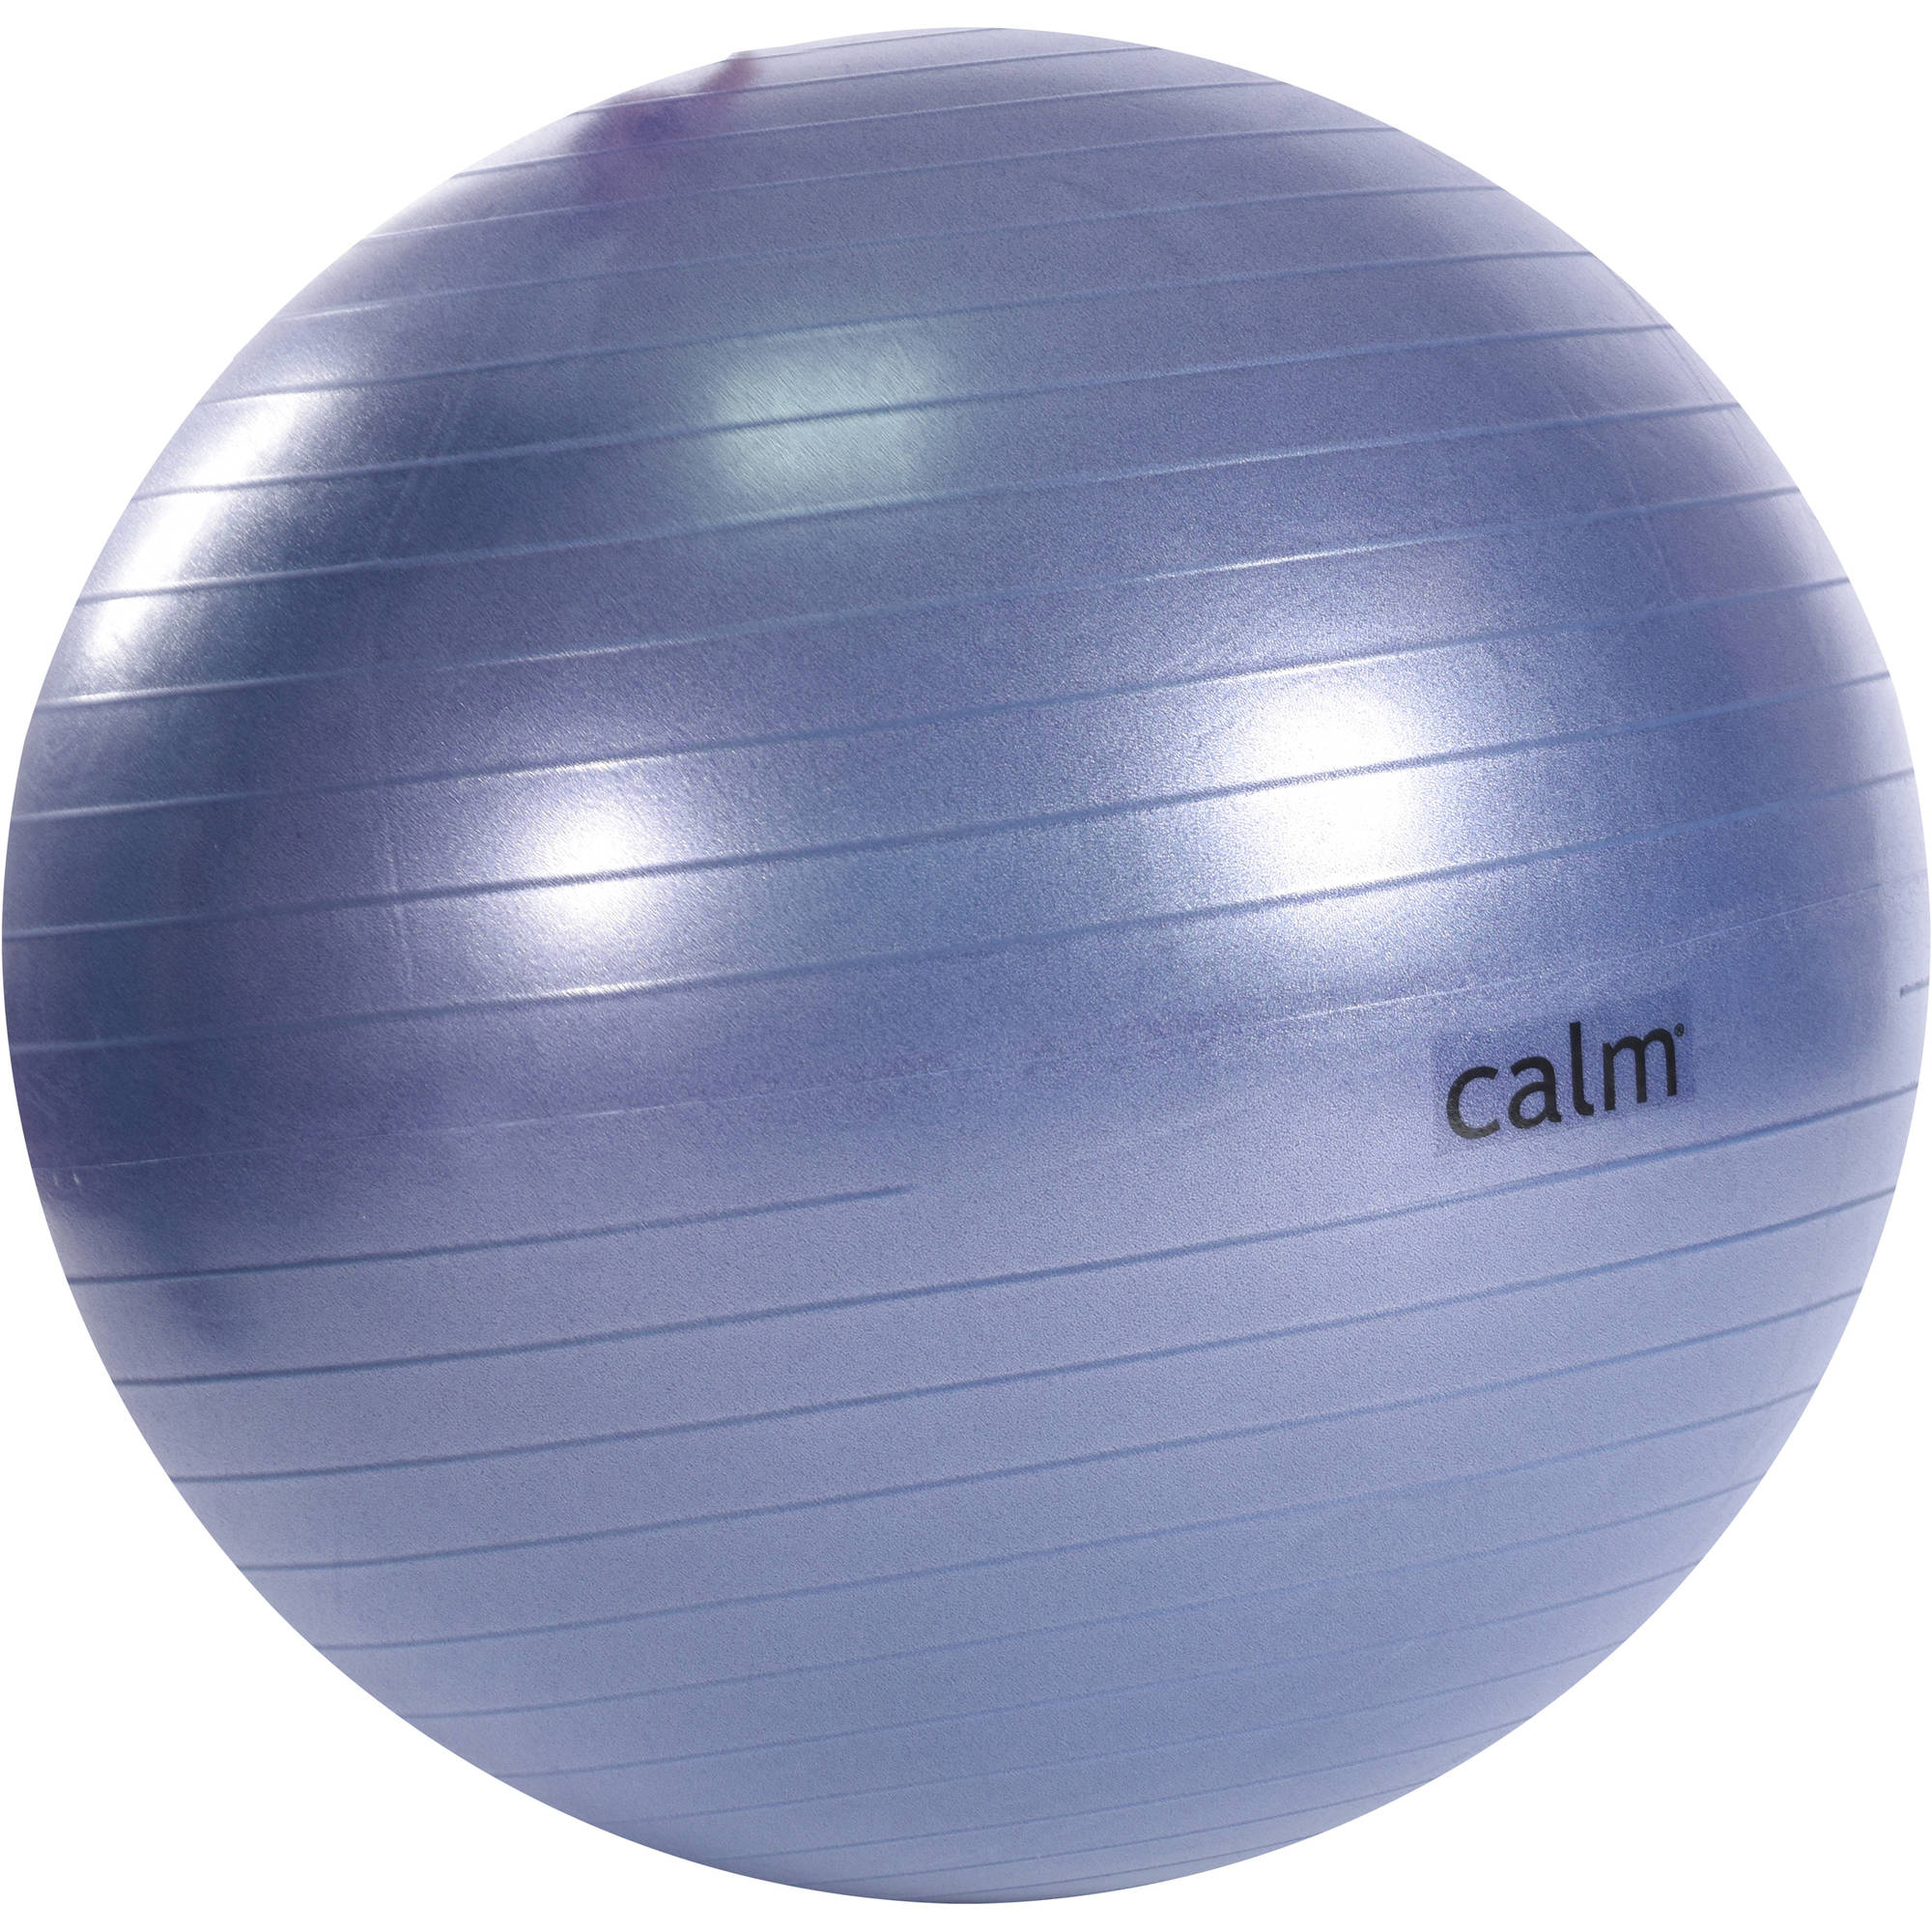 Calm 75 cm Anti-Burst Body Ball